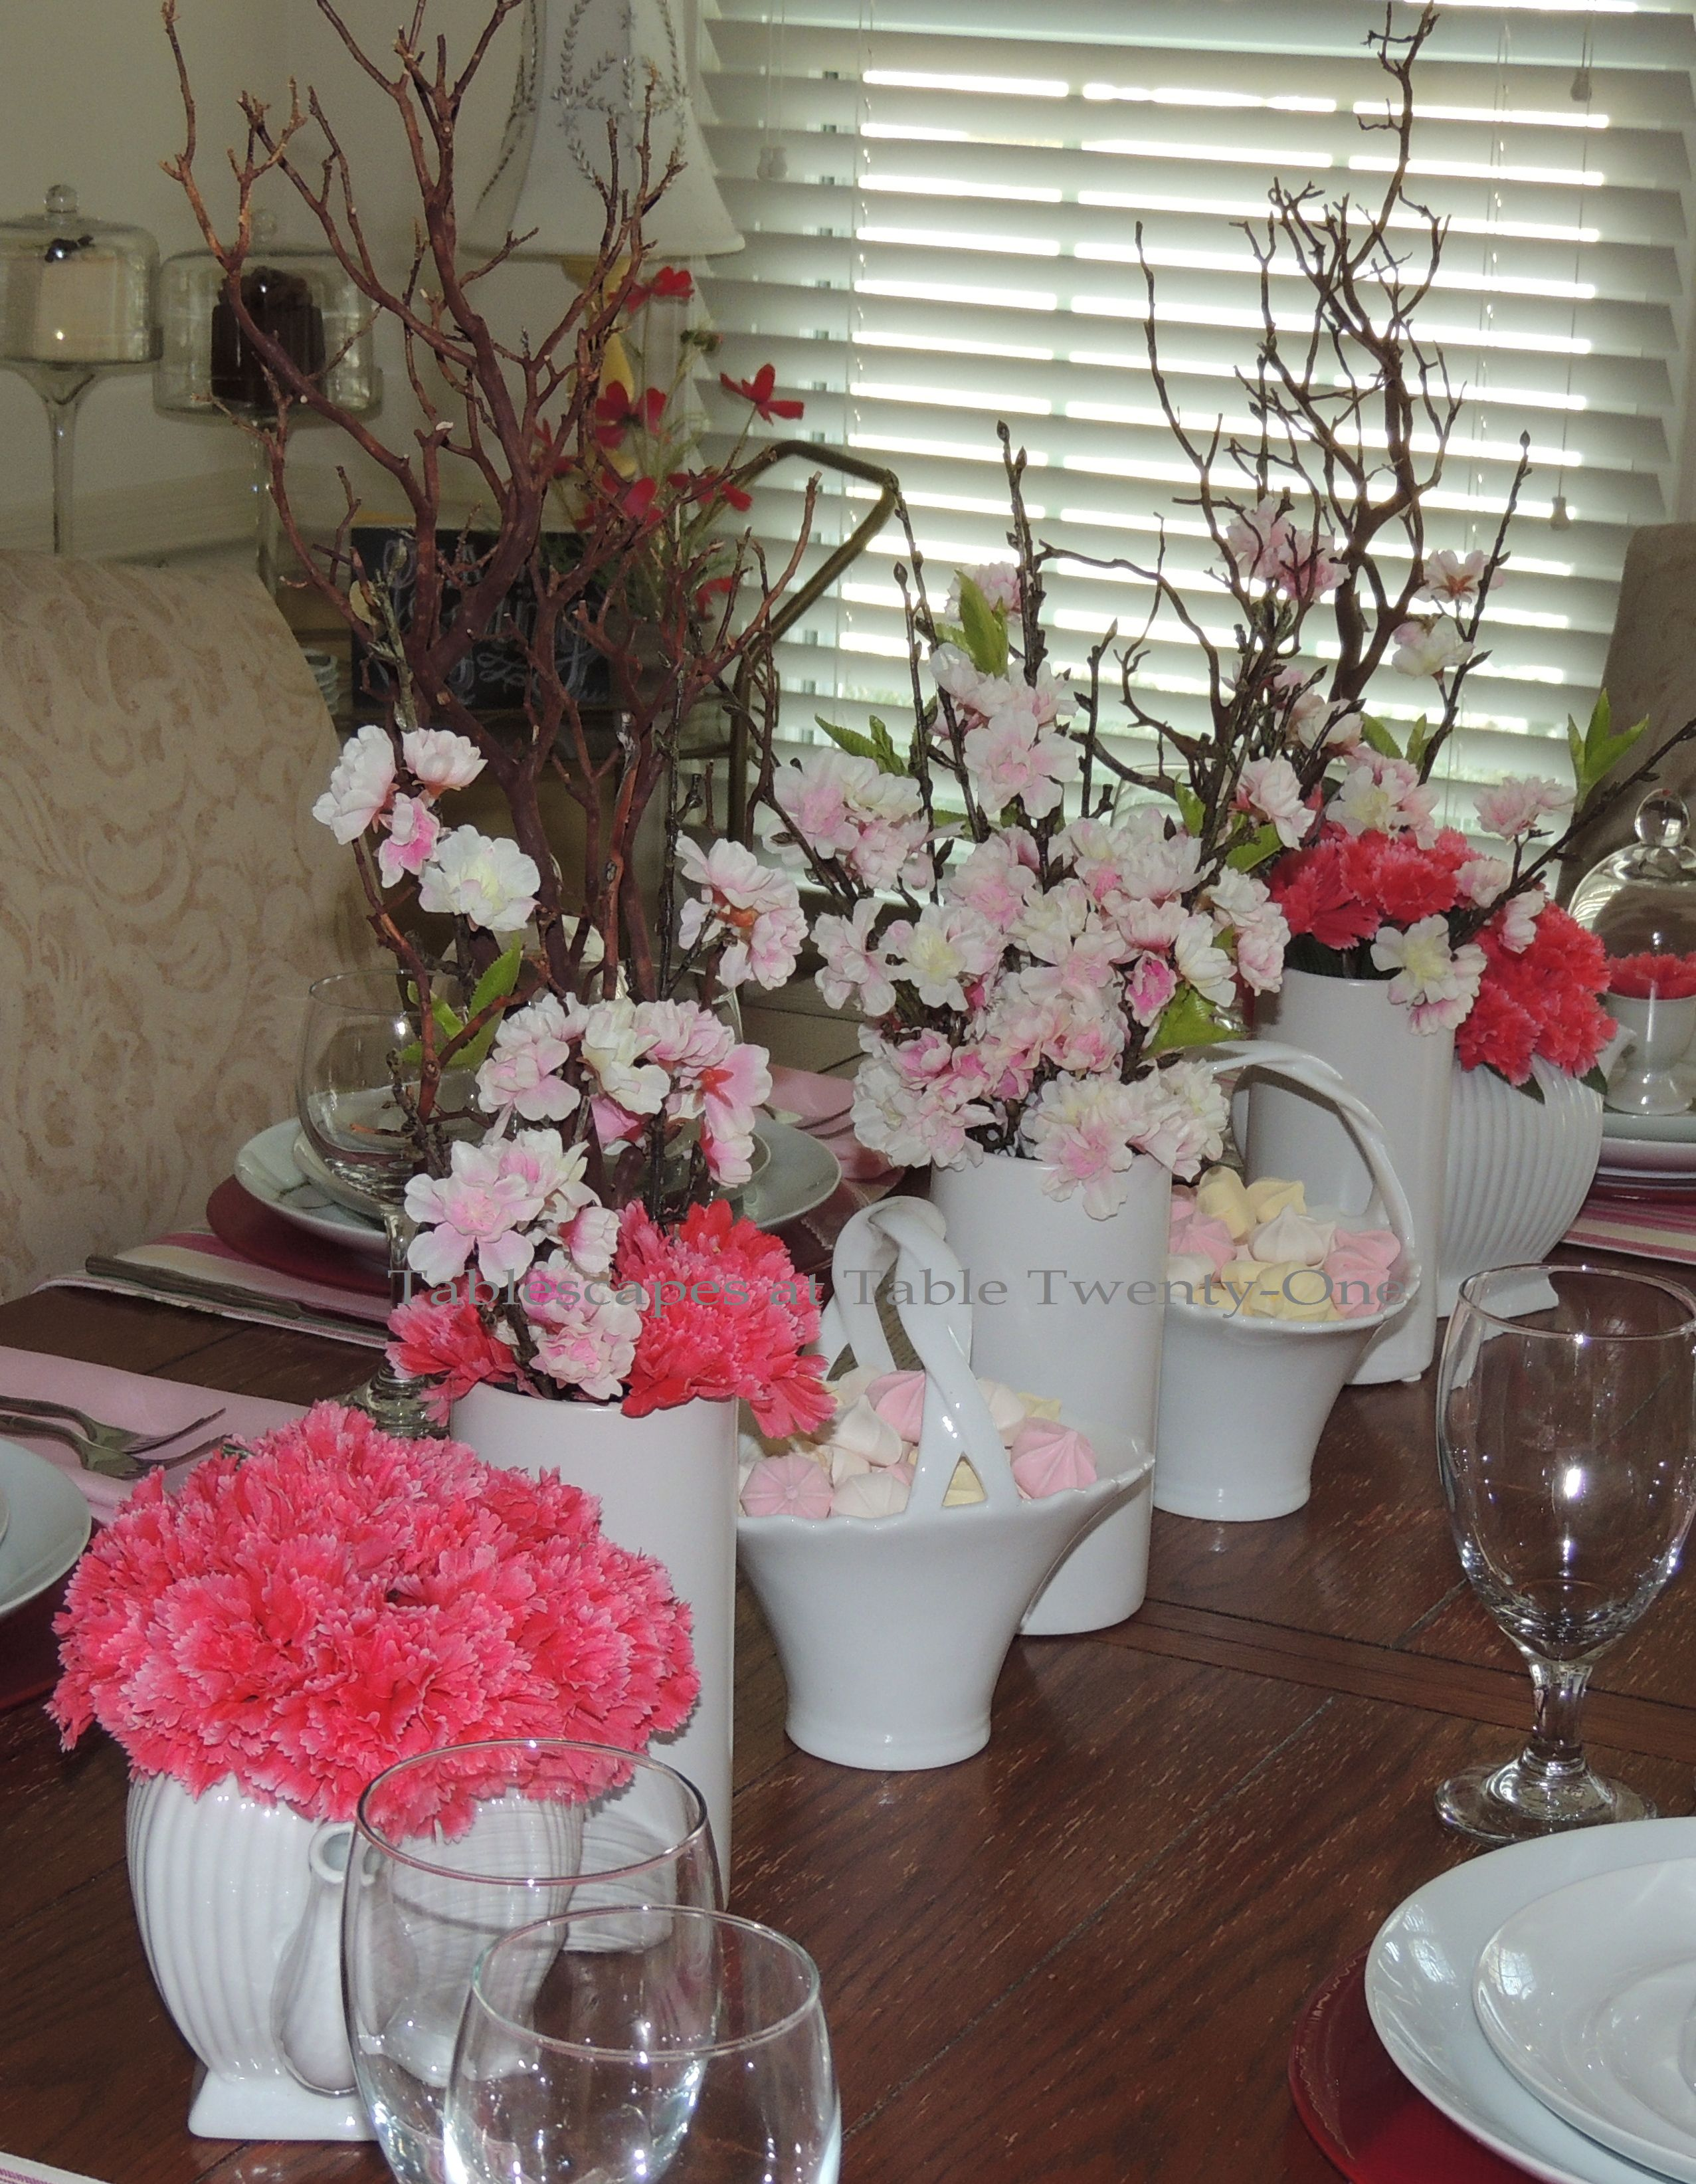 Tablescapes at Table Twenty-One, www.tabletwentyone.wordpress.com - All A'Bloom in Pink for Spring: Full centerpiece